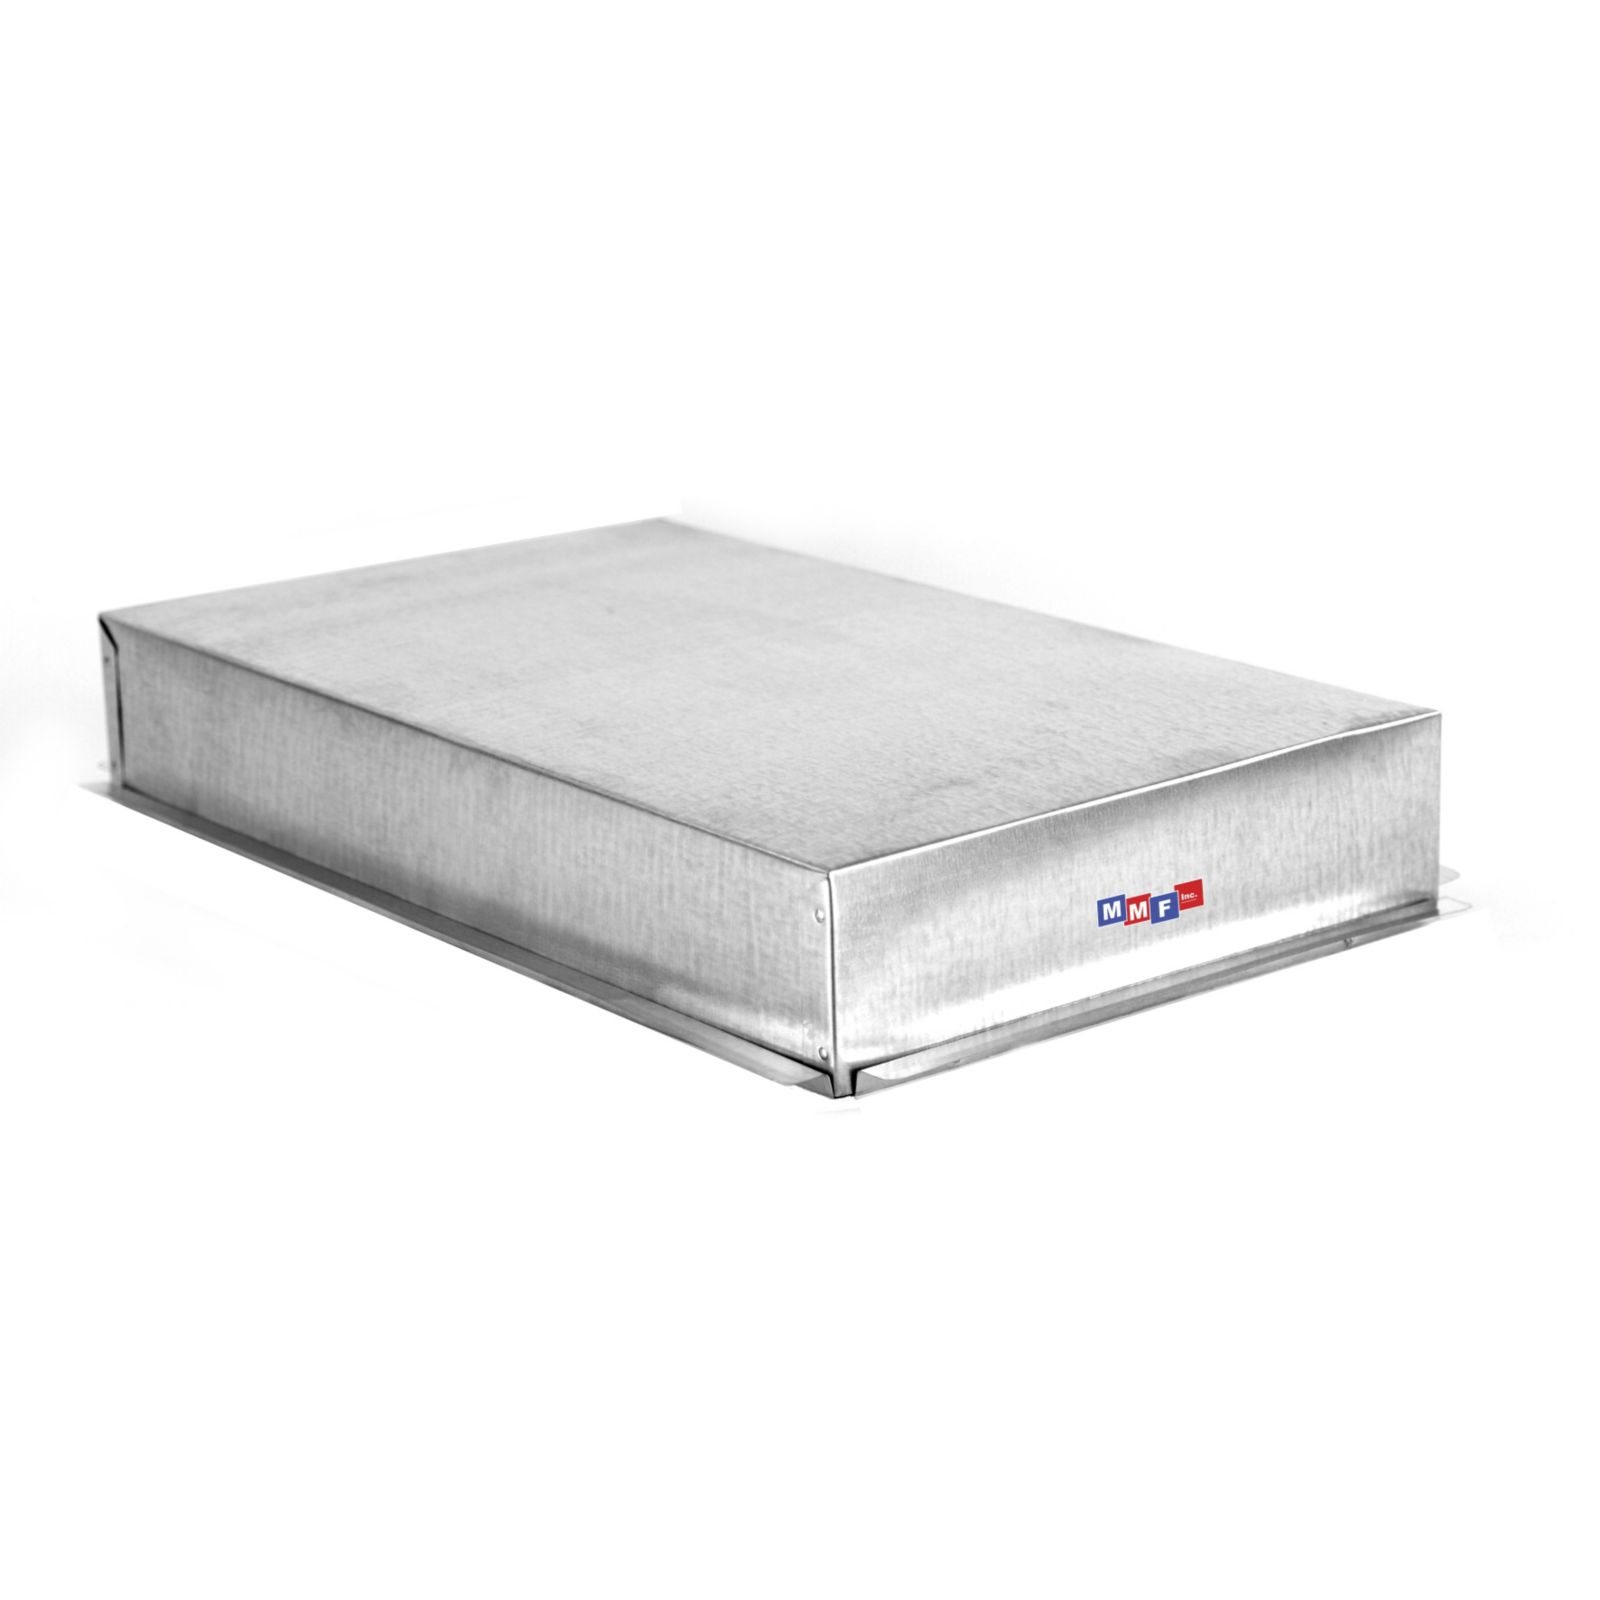 "Modular Metal ACRH2514HS - Return Air Can - 28 Ga - Seal All Seams 25 1/4"" X 14 1/4"" Uninsulated - 6"" High"